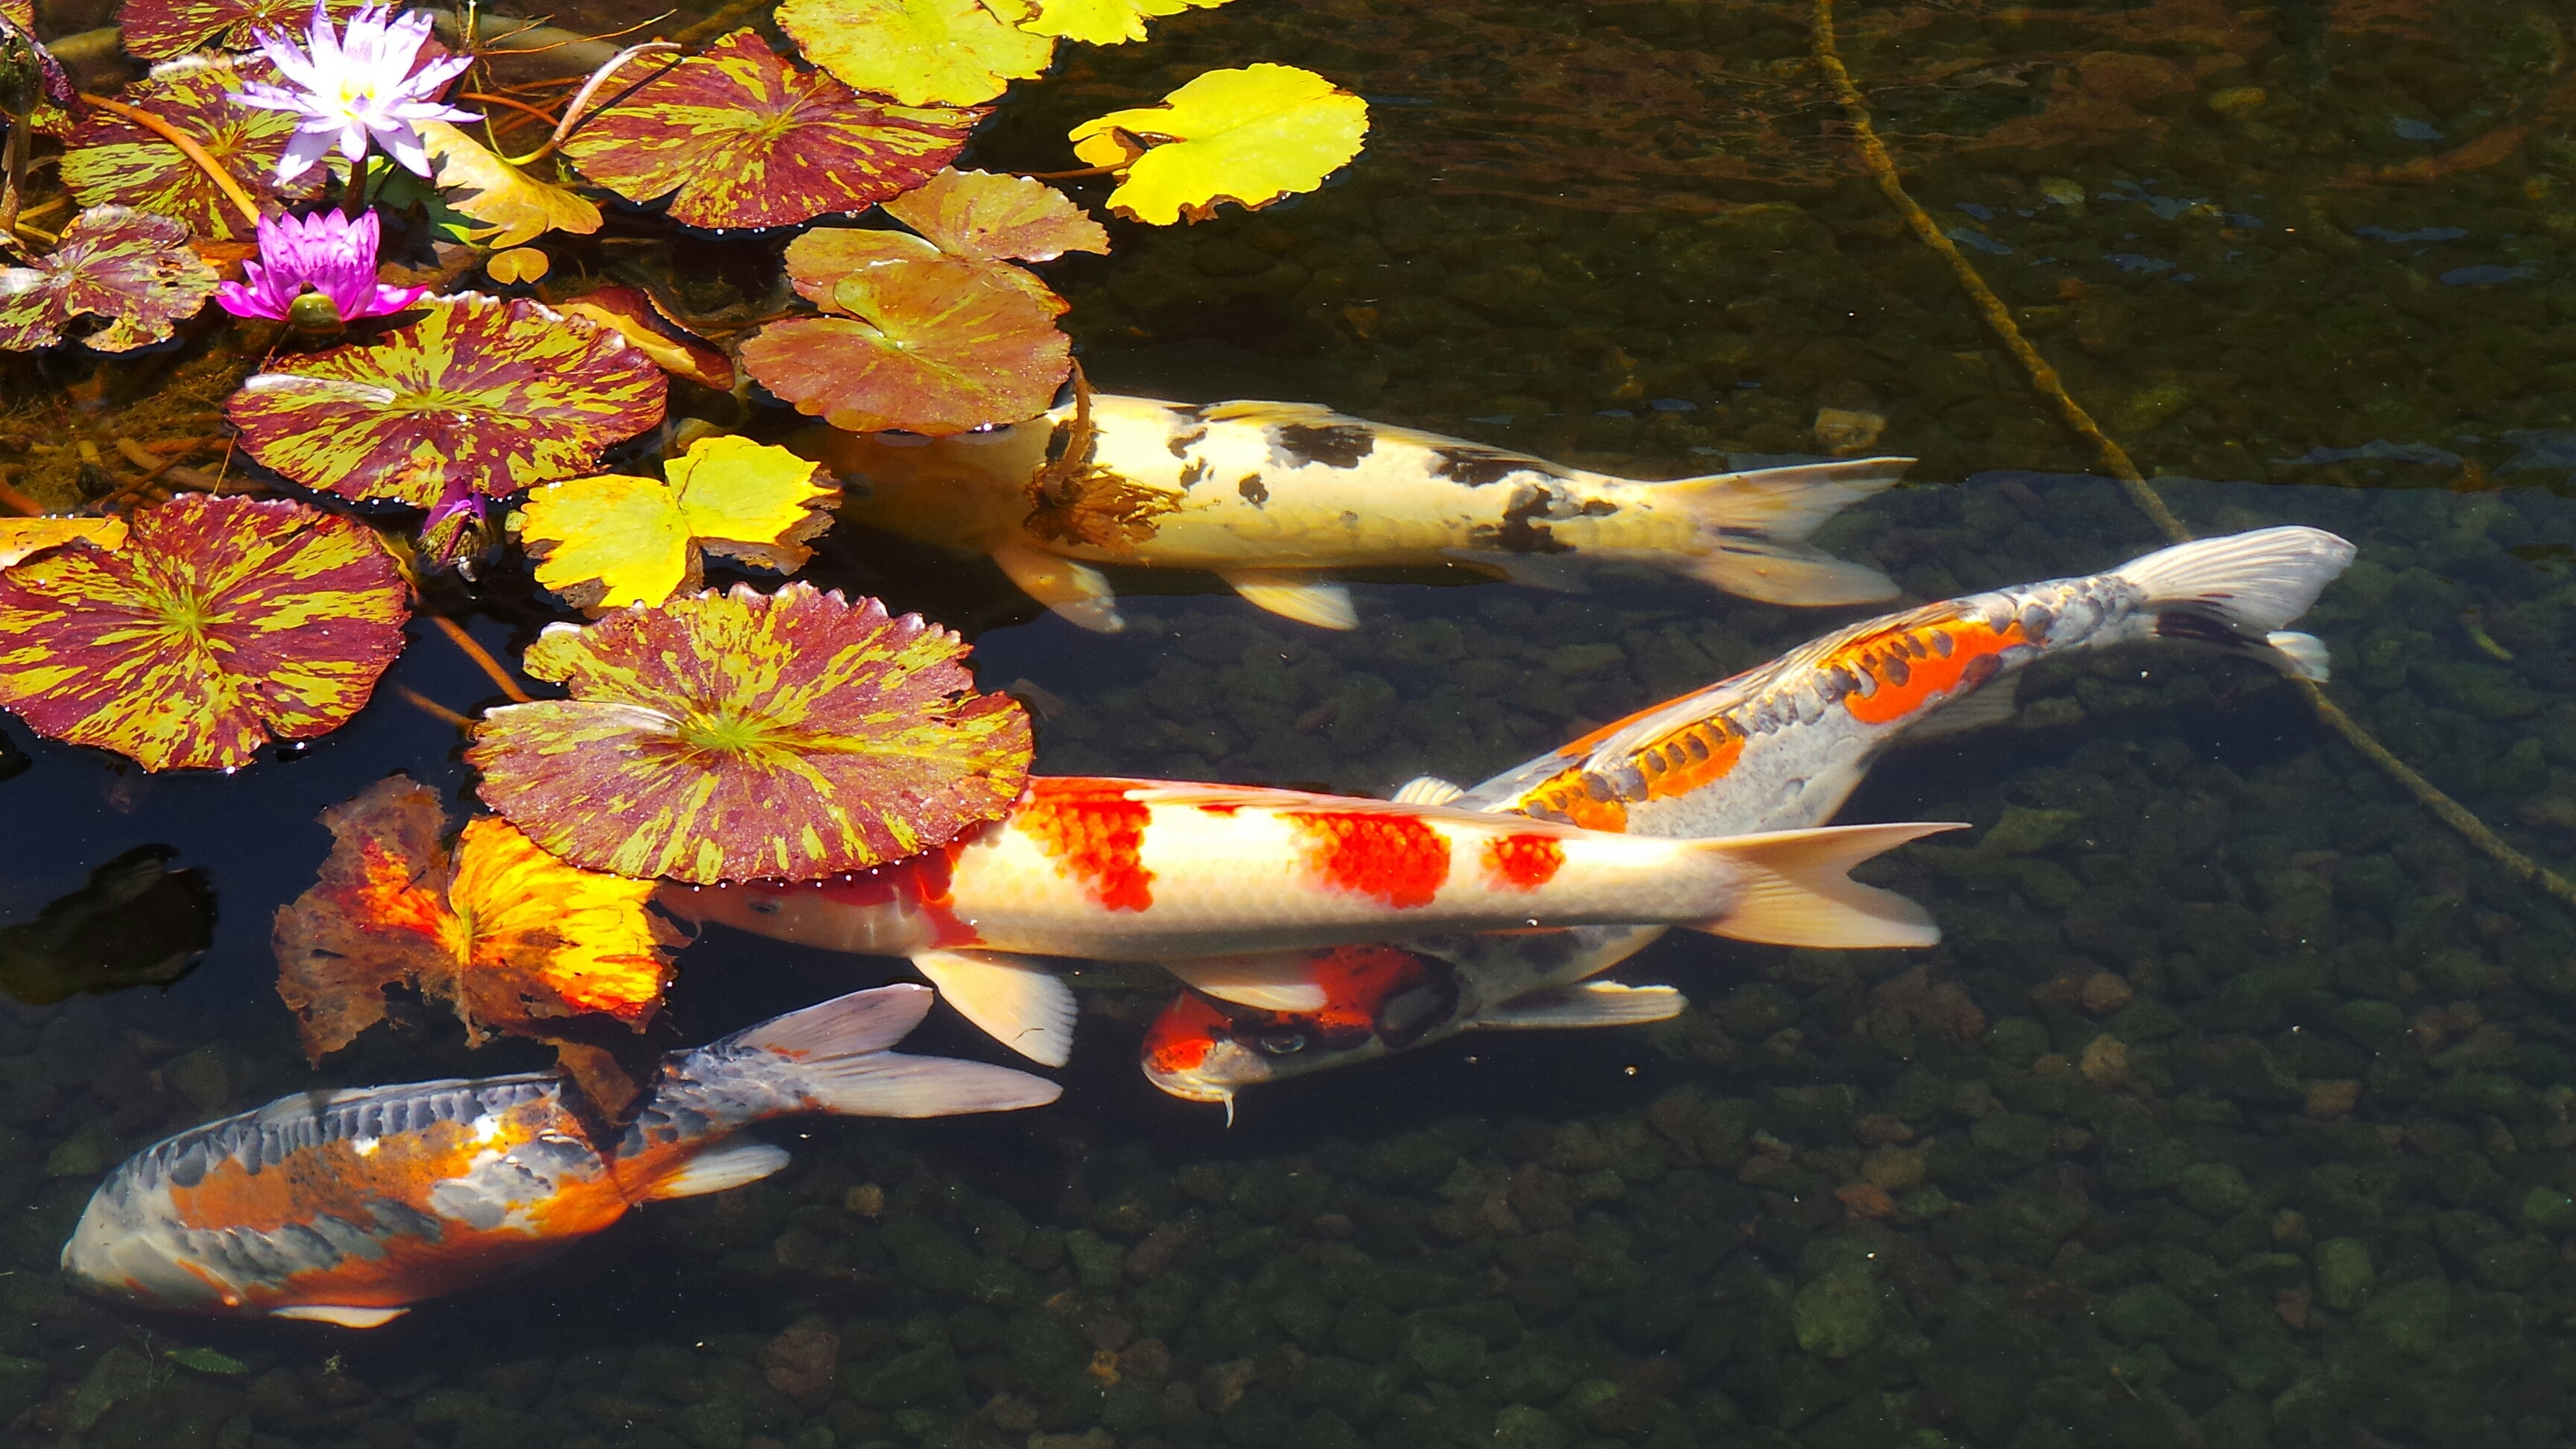 Guide to the fashion island koi ponds in newport beach for Koi pond fish